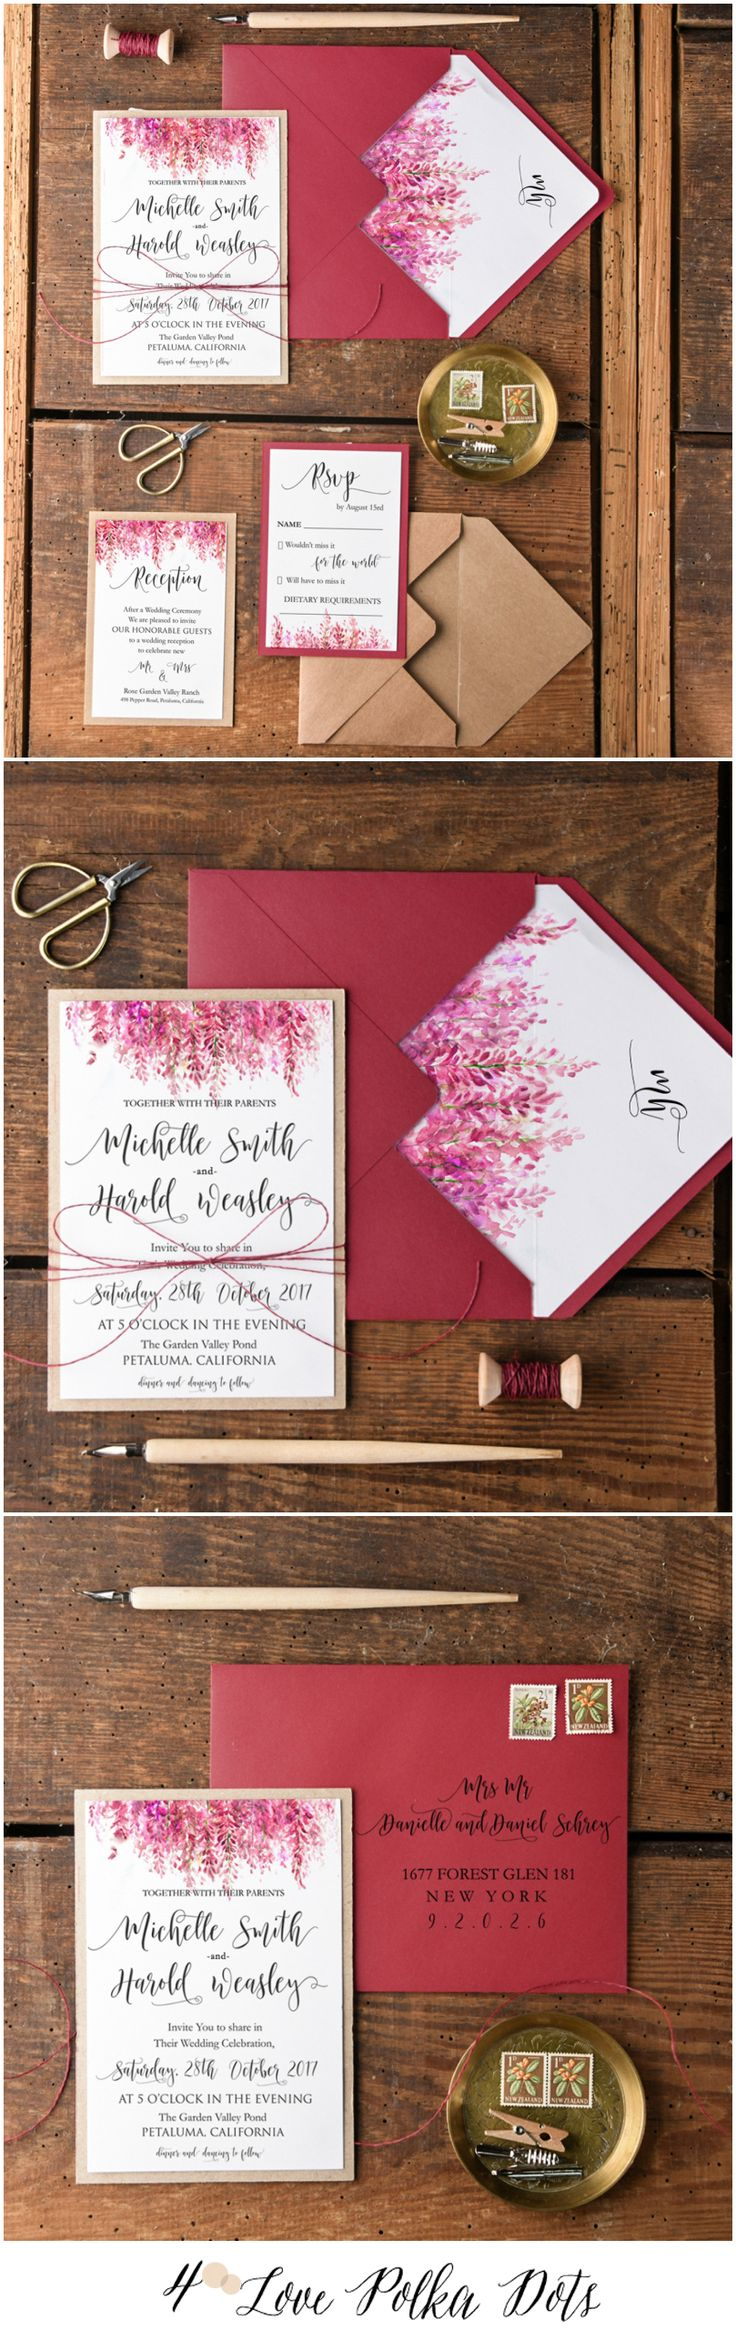 133 best Wedding Invitations images on Pinterest | Invitation cards ...